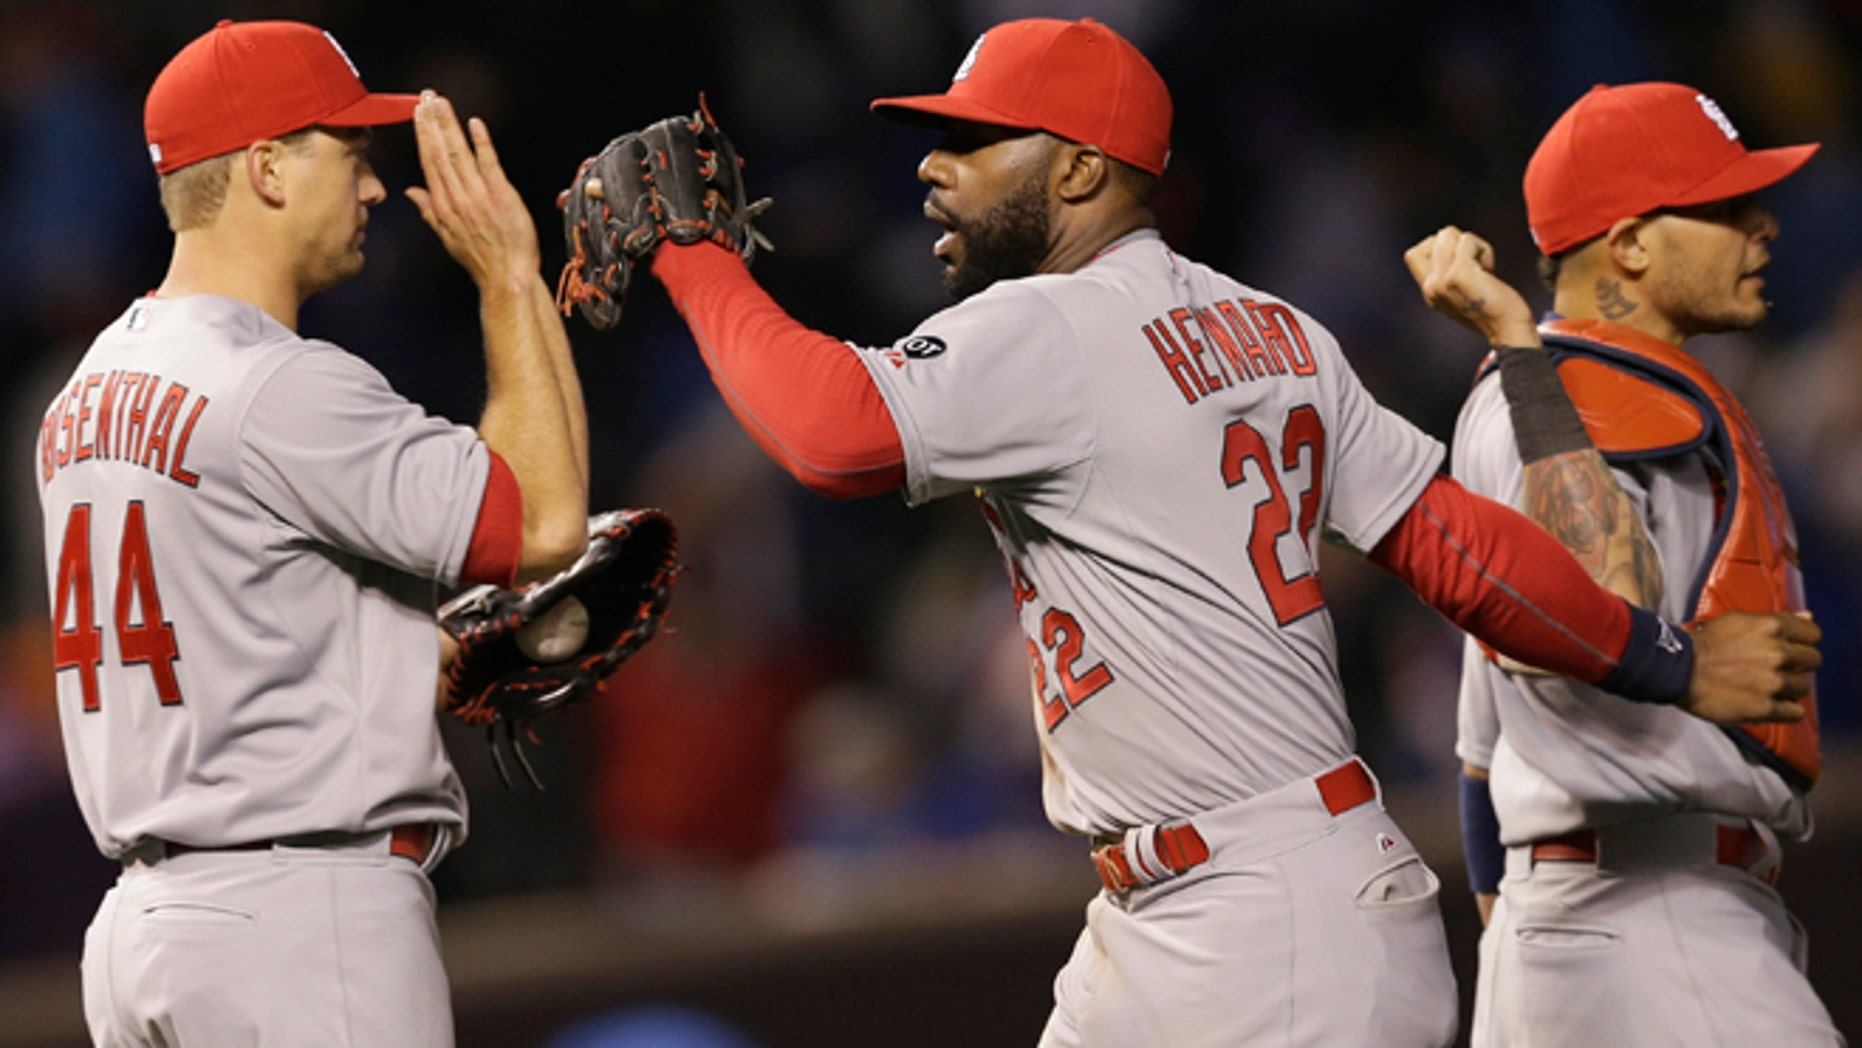 St. Louis Cardinals right fielder Jason Hayward, center, celebrates with closer Trevor Rosenthal, left, and catcher Yadier Molina after the St. Louis Cardinals defeated the Chicago Cubs 3-0 in a Major League Baseball season-opening game in Chicago, Sunday, April 5, 2015. (AP Photo/Nam Y. Huh)